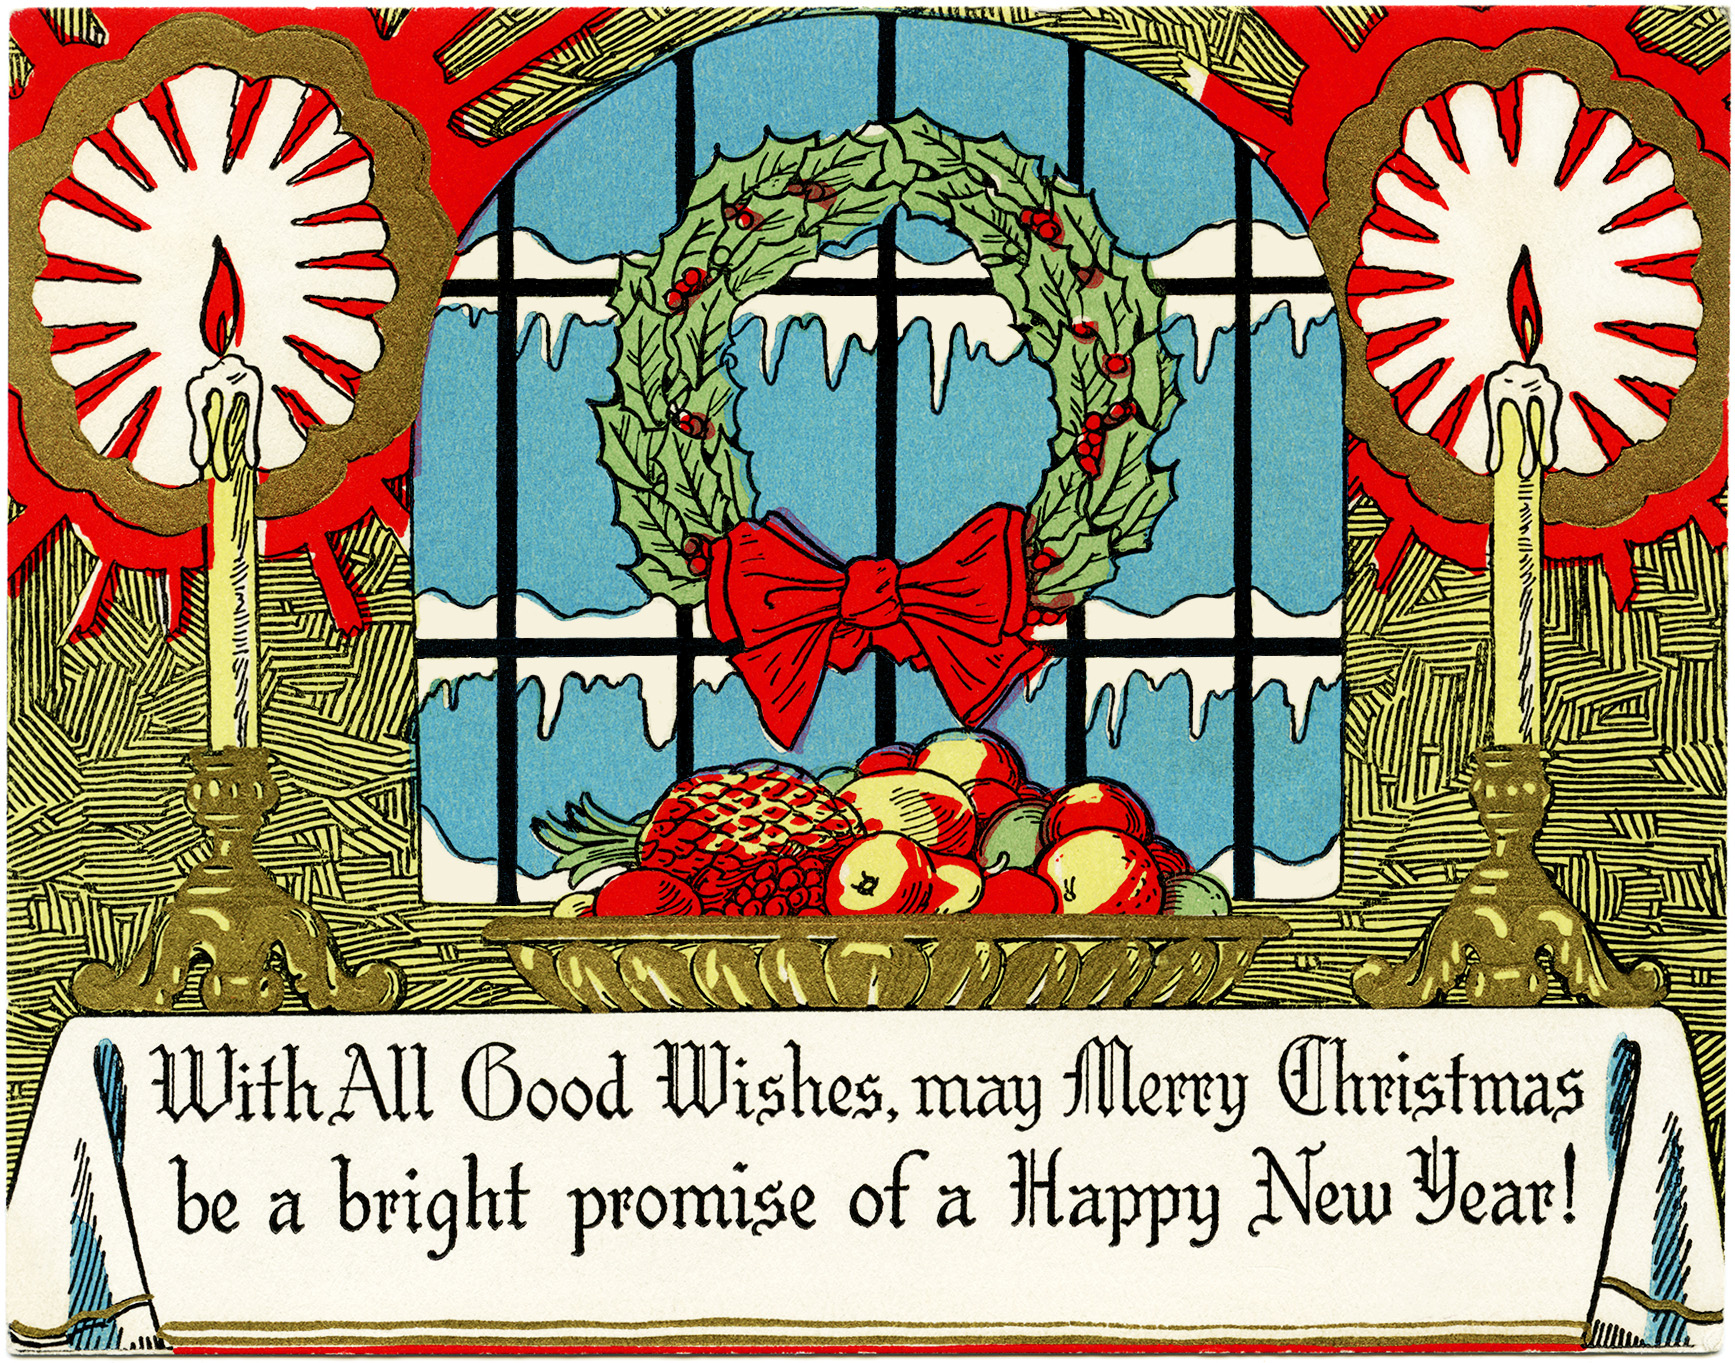 Wreath Candles Fruit Christmas Card   Free Vintage Image   Old Design